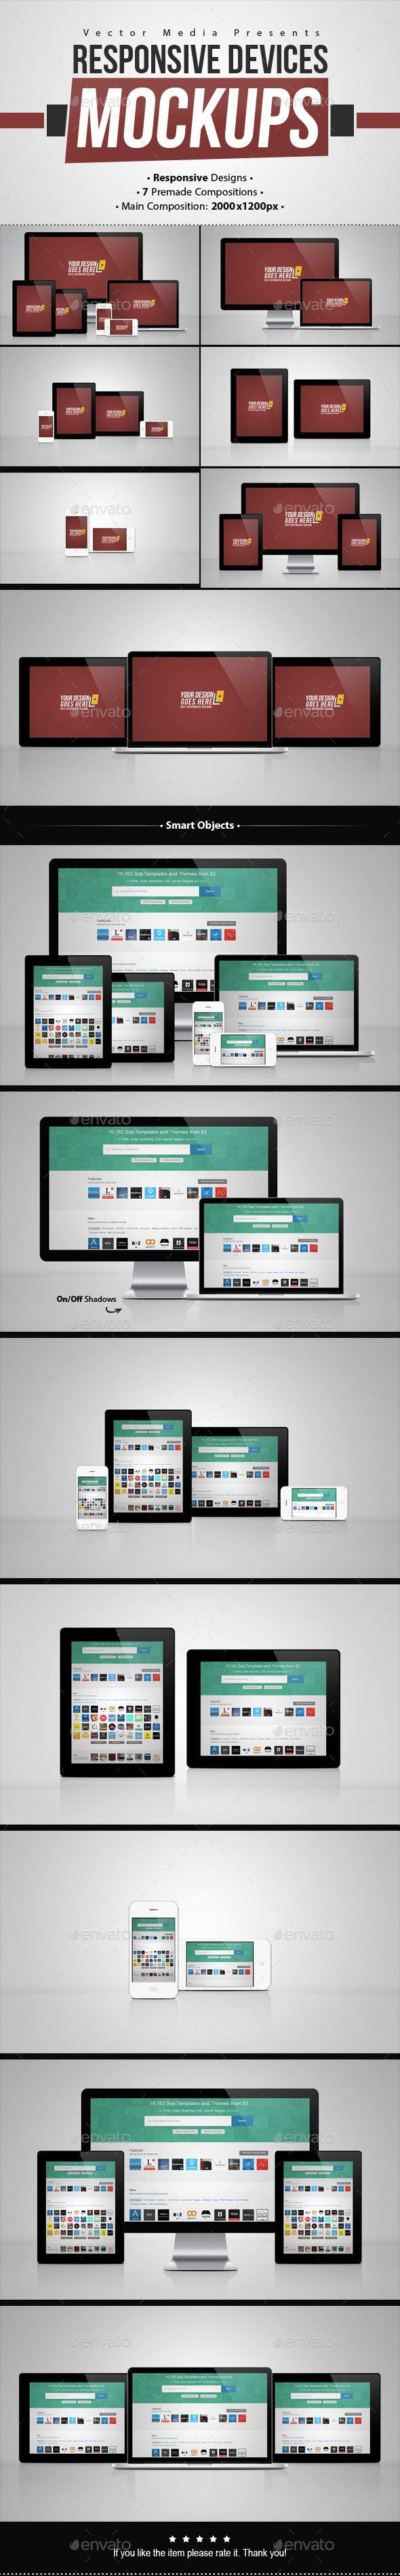 GraphicRiver Responsive Devices Mock-ups 8922730